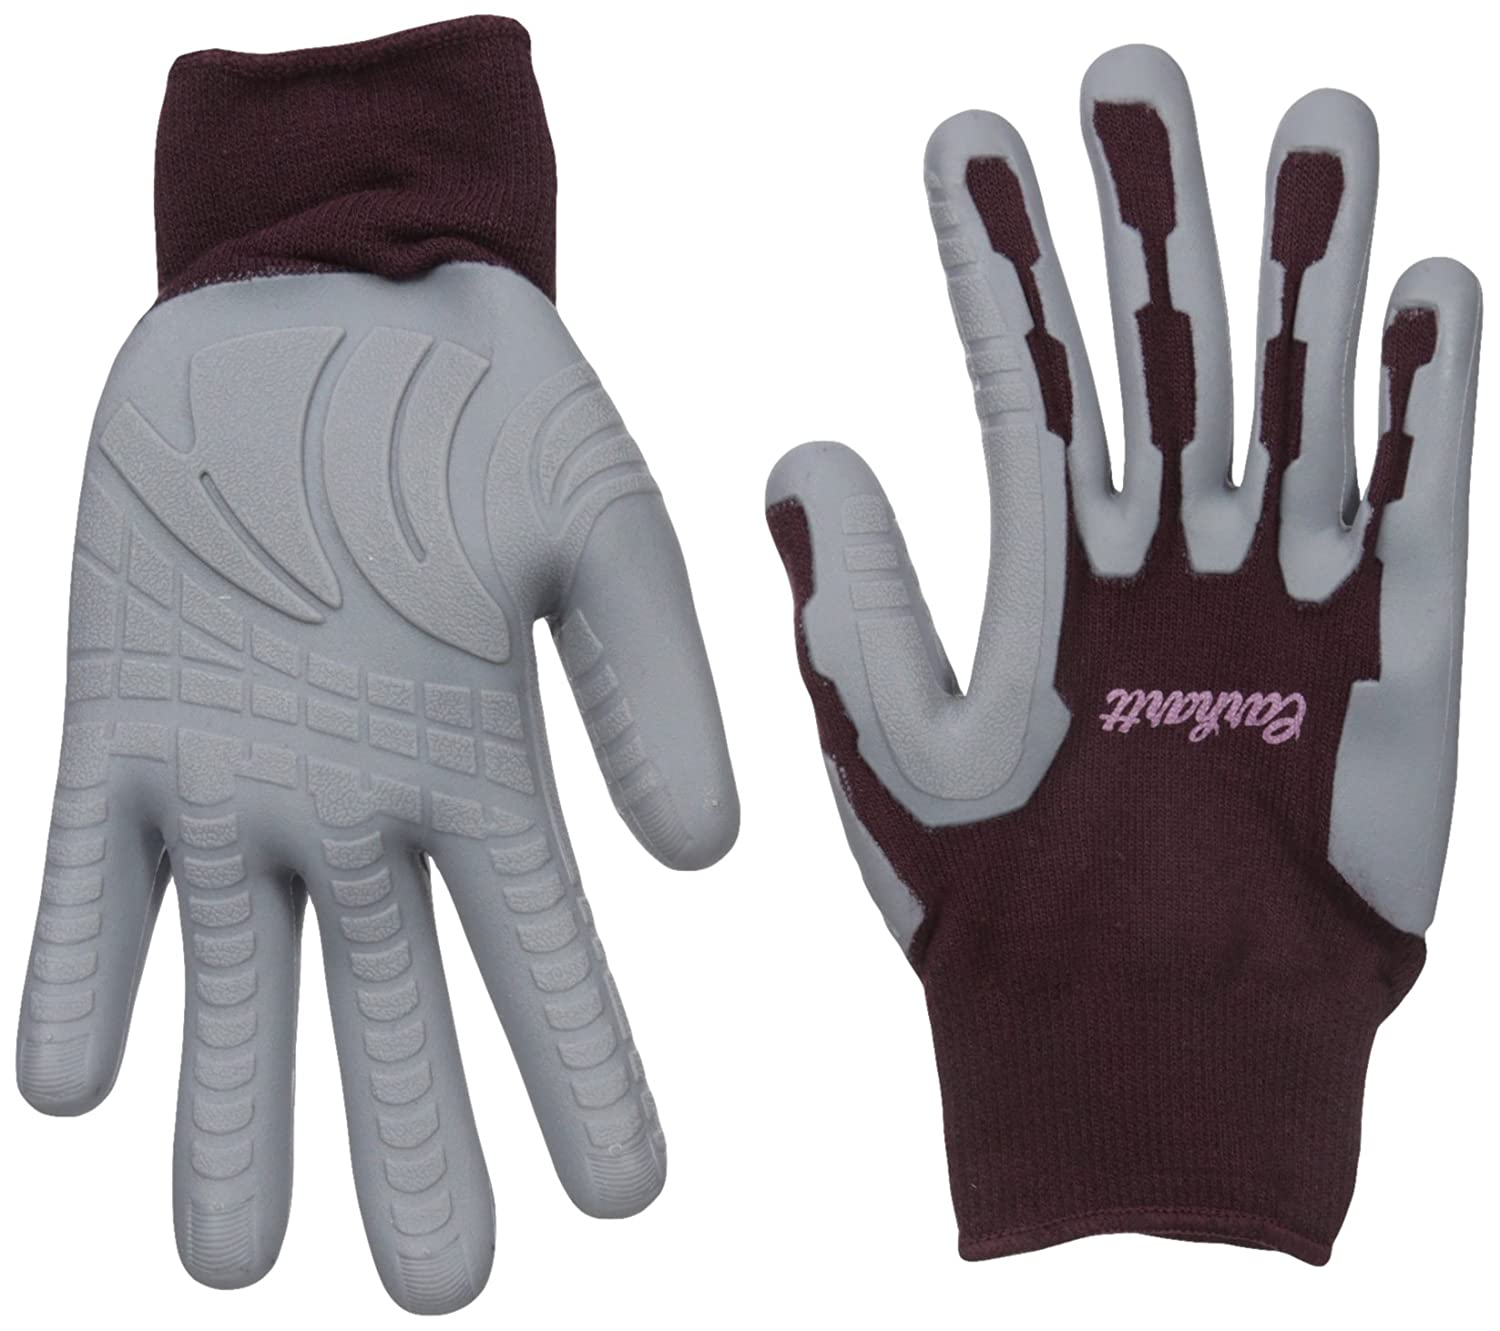 Long black gloves amazon - Carhartt Women S Durable Pro Palm Work Glove With Extreme Grip